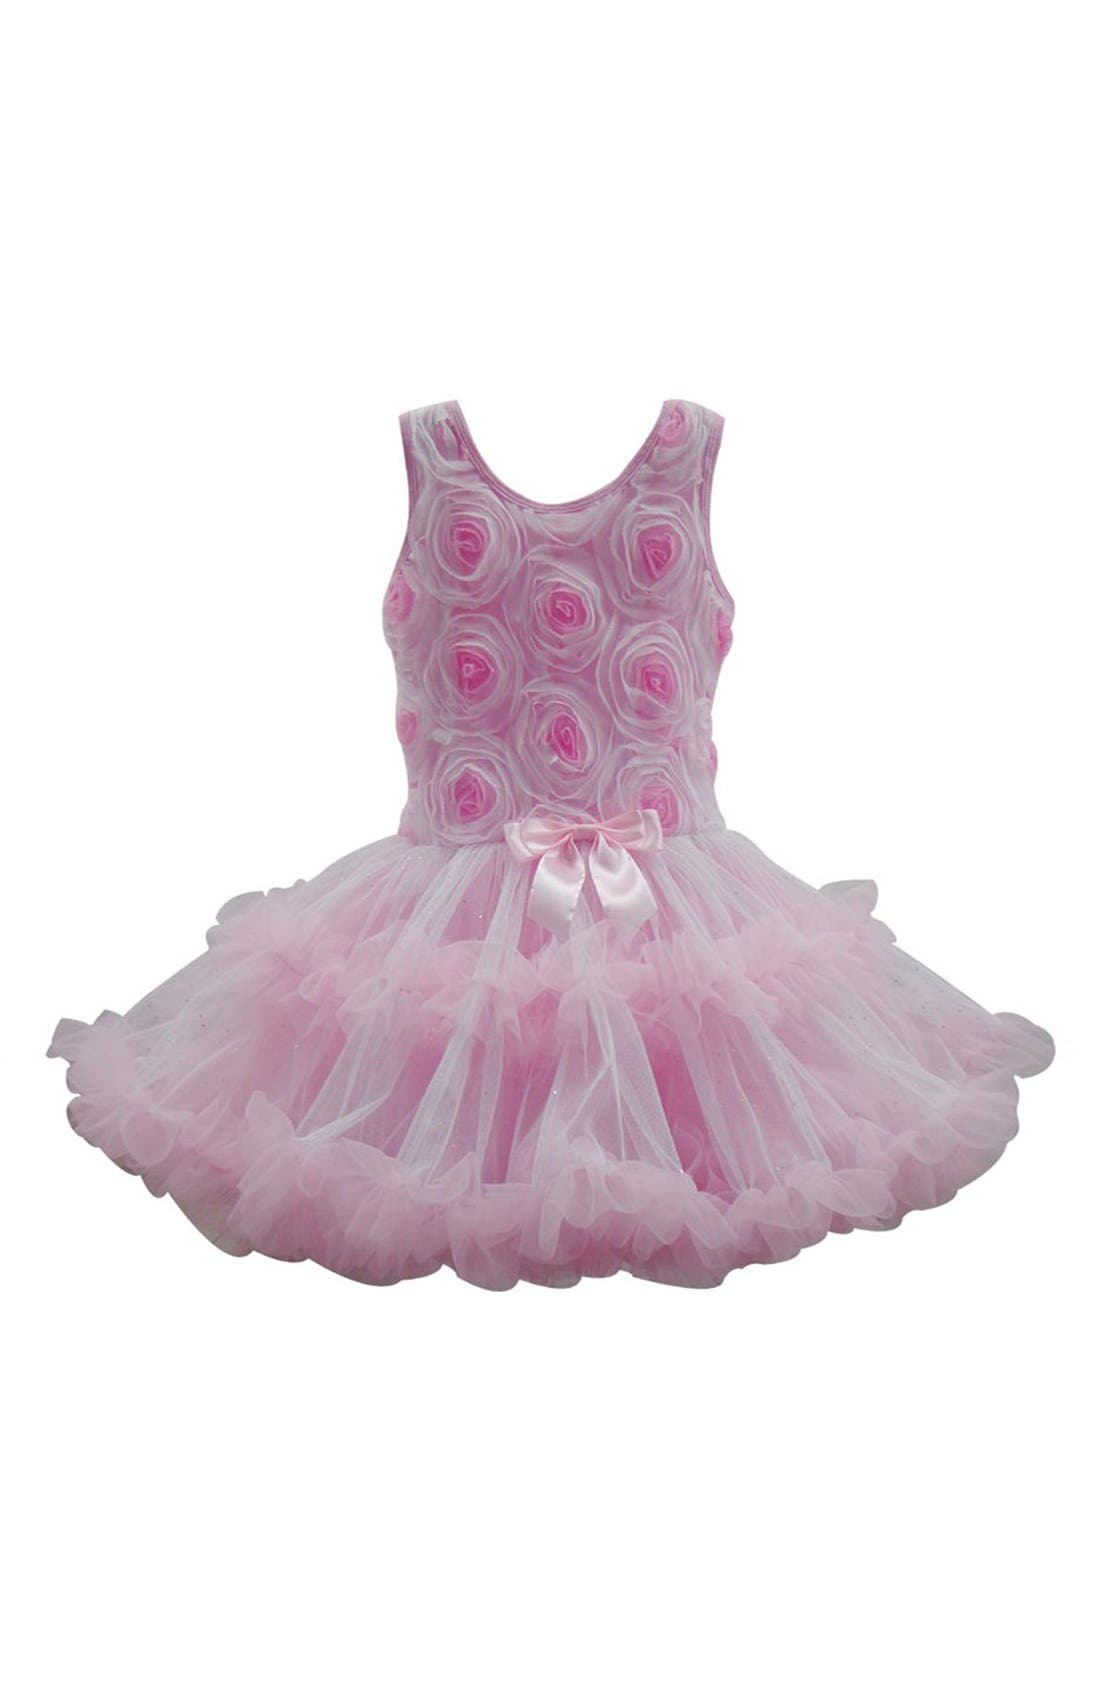 Main Image - Popatu Ribbon Rosette Flower Petidress (Baby Girls)